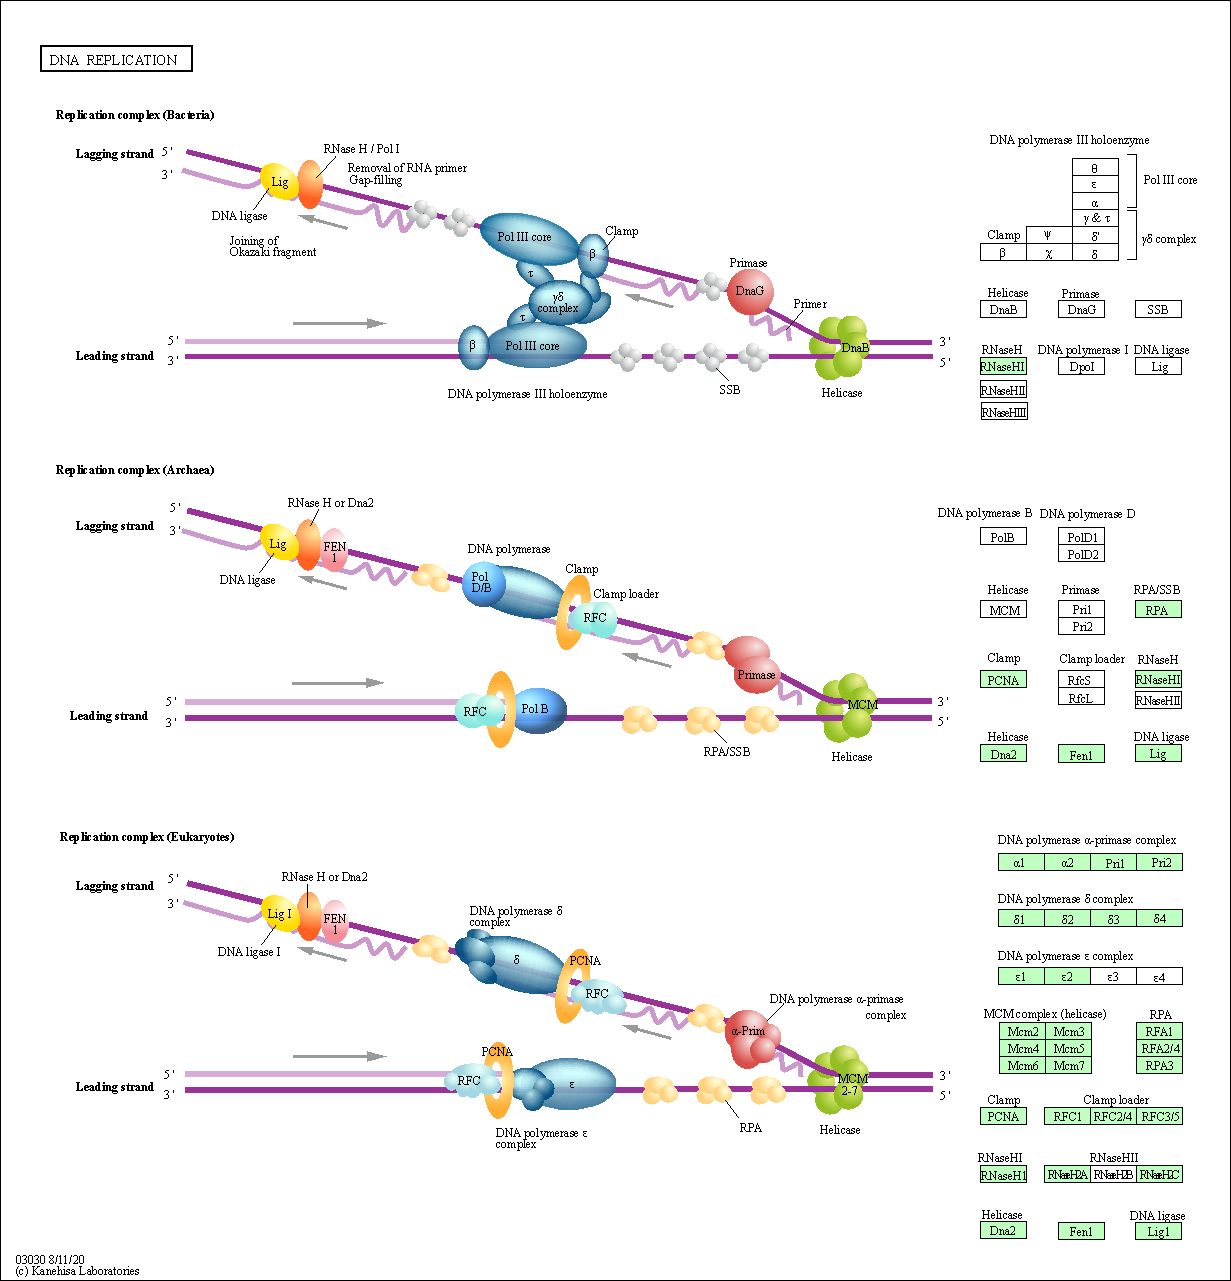 KEGG PATHWAY: DNA replication - Neurospora crassa